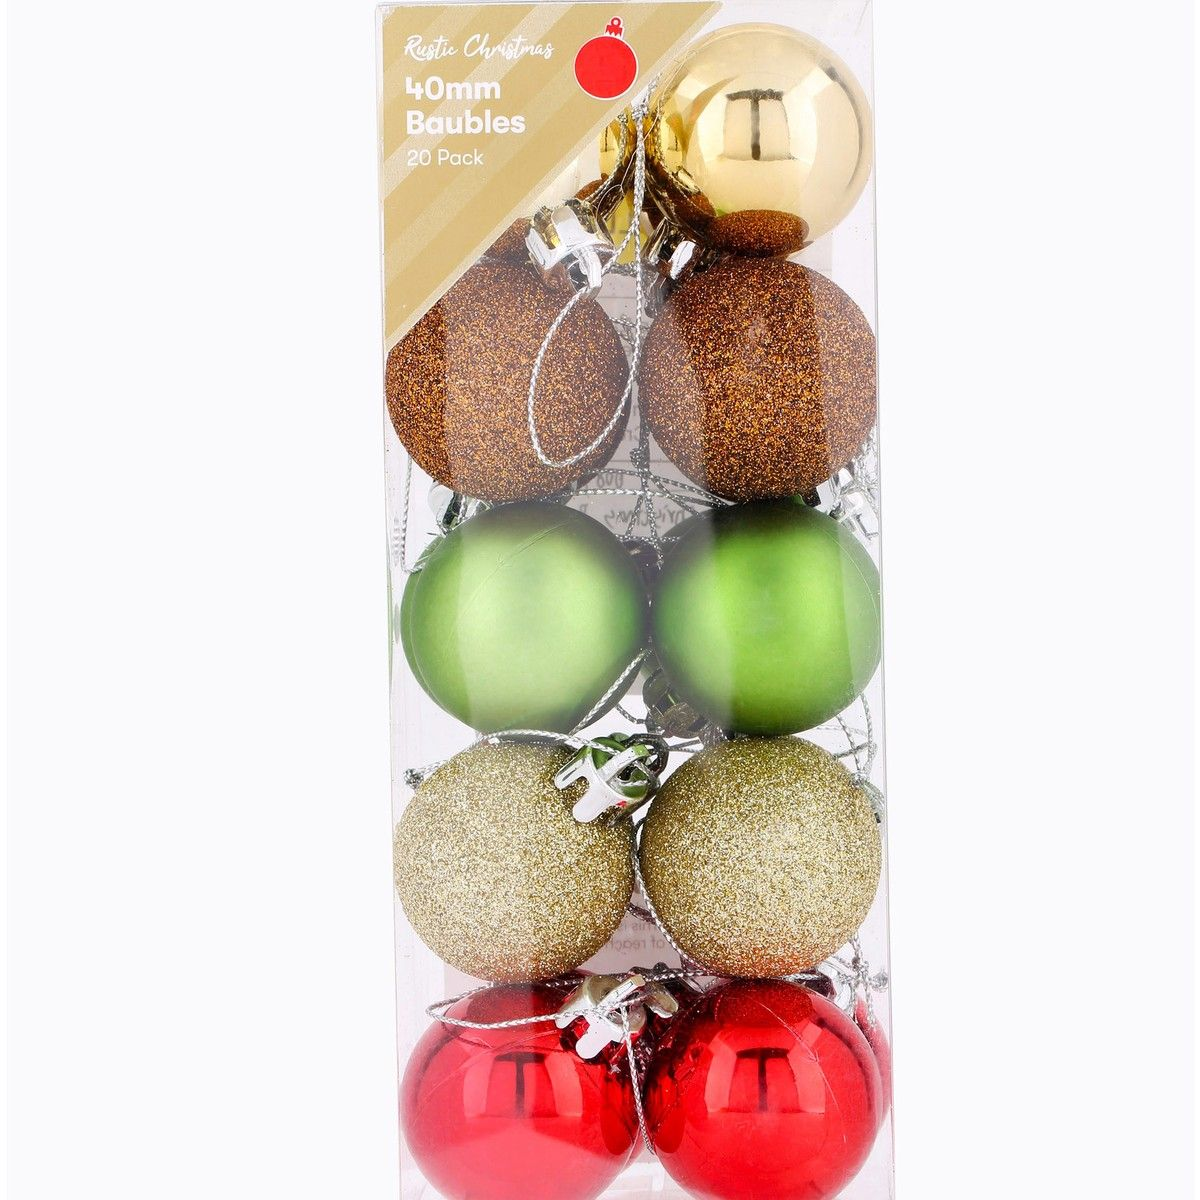 Christmas Rustic 40mm Baubles 20 Pack Multi Big W Xmas Decorations Rustic Christmas Christmas Baubles